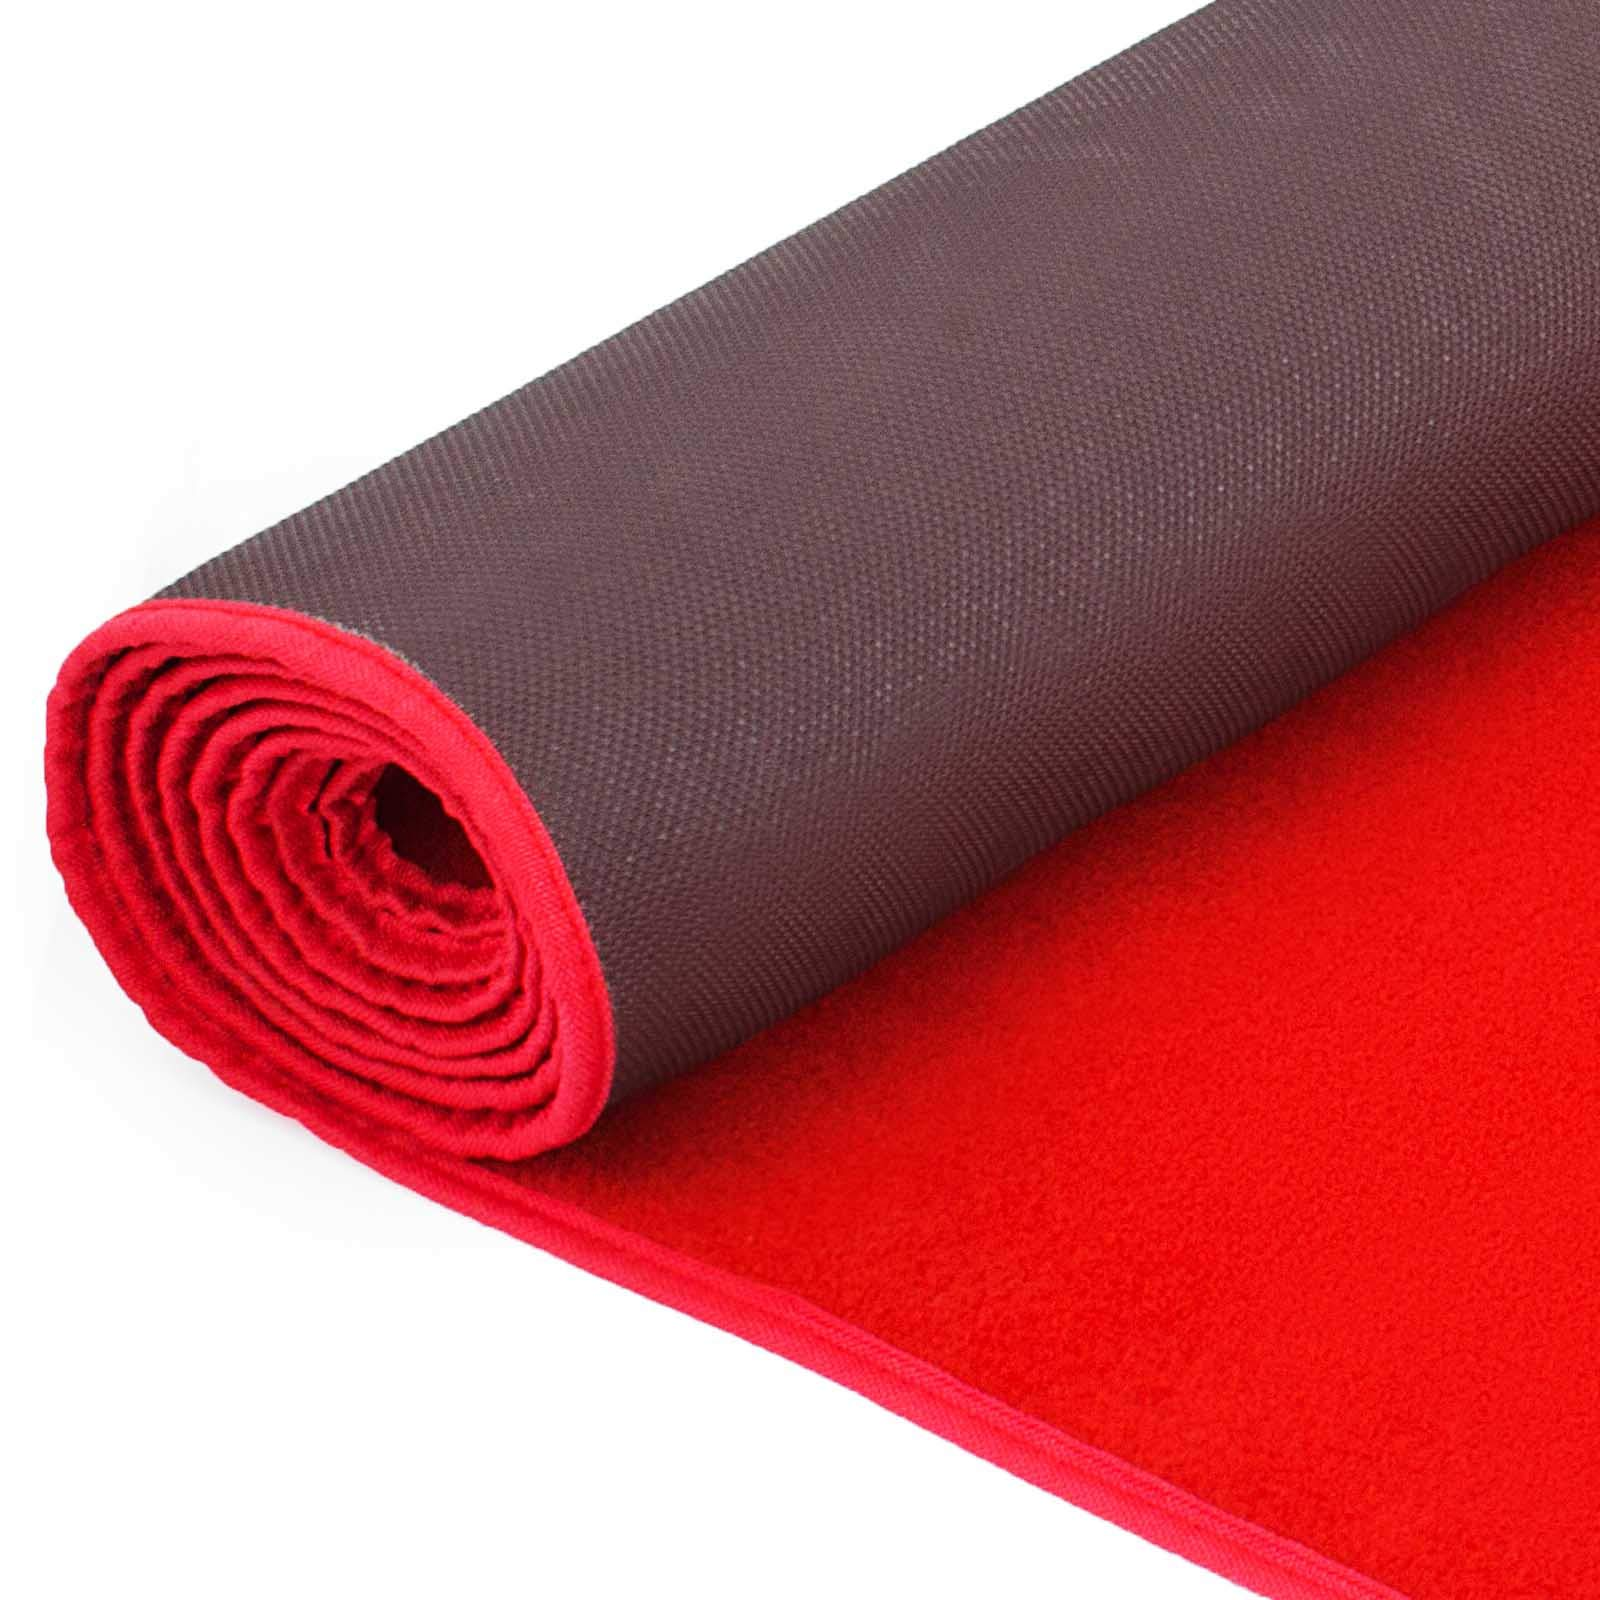 Happybuy 3.3Ft X 13Ft Large Red Carpet Runner Rug Solid TRP Rubber Backed Hollywood Runner Carpet Non-Slip Stair Patio Party Decor Wedding 1M X 4M Aisle Floor Runner Rug - Various Sizes (Red, 3x13Ft) by Happybuy (Image #8)